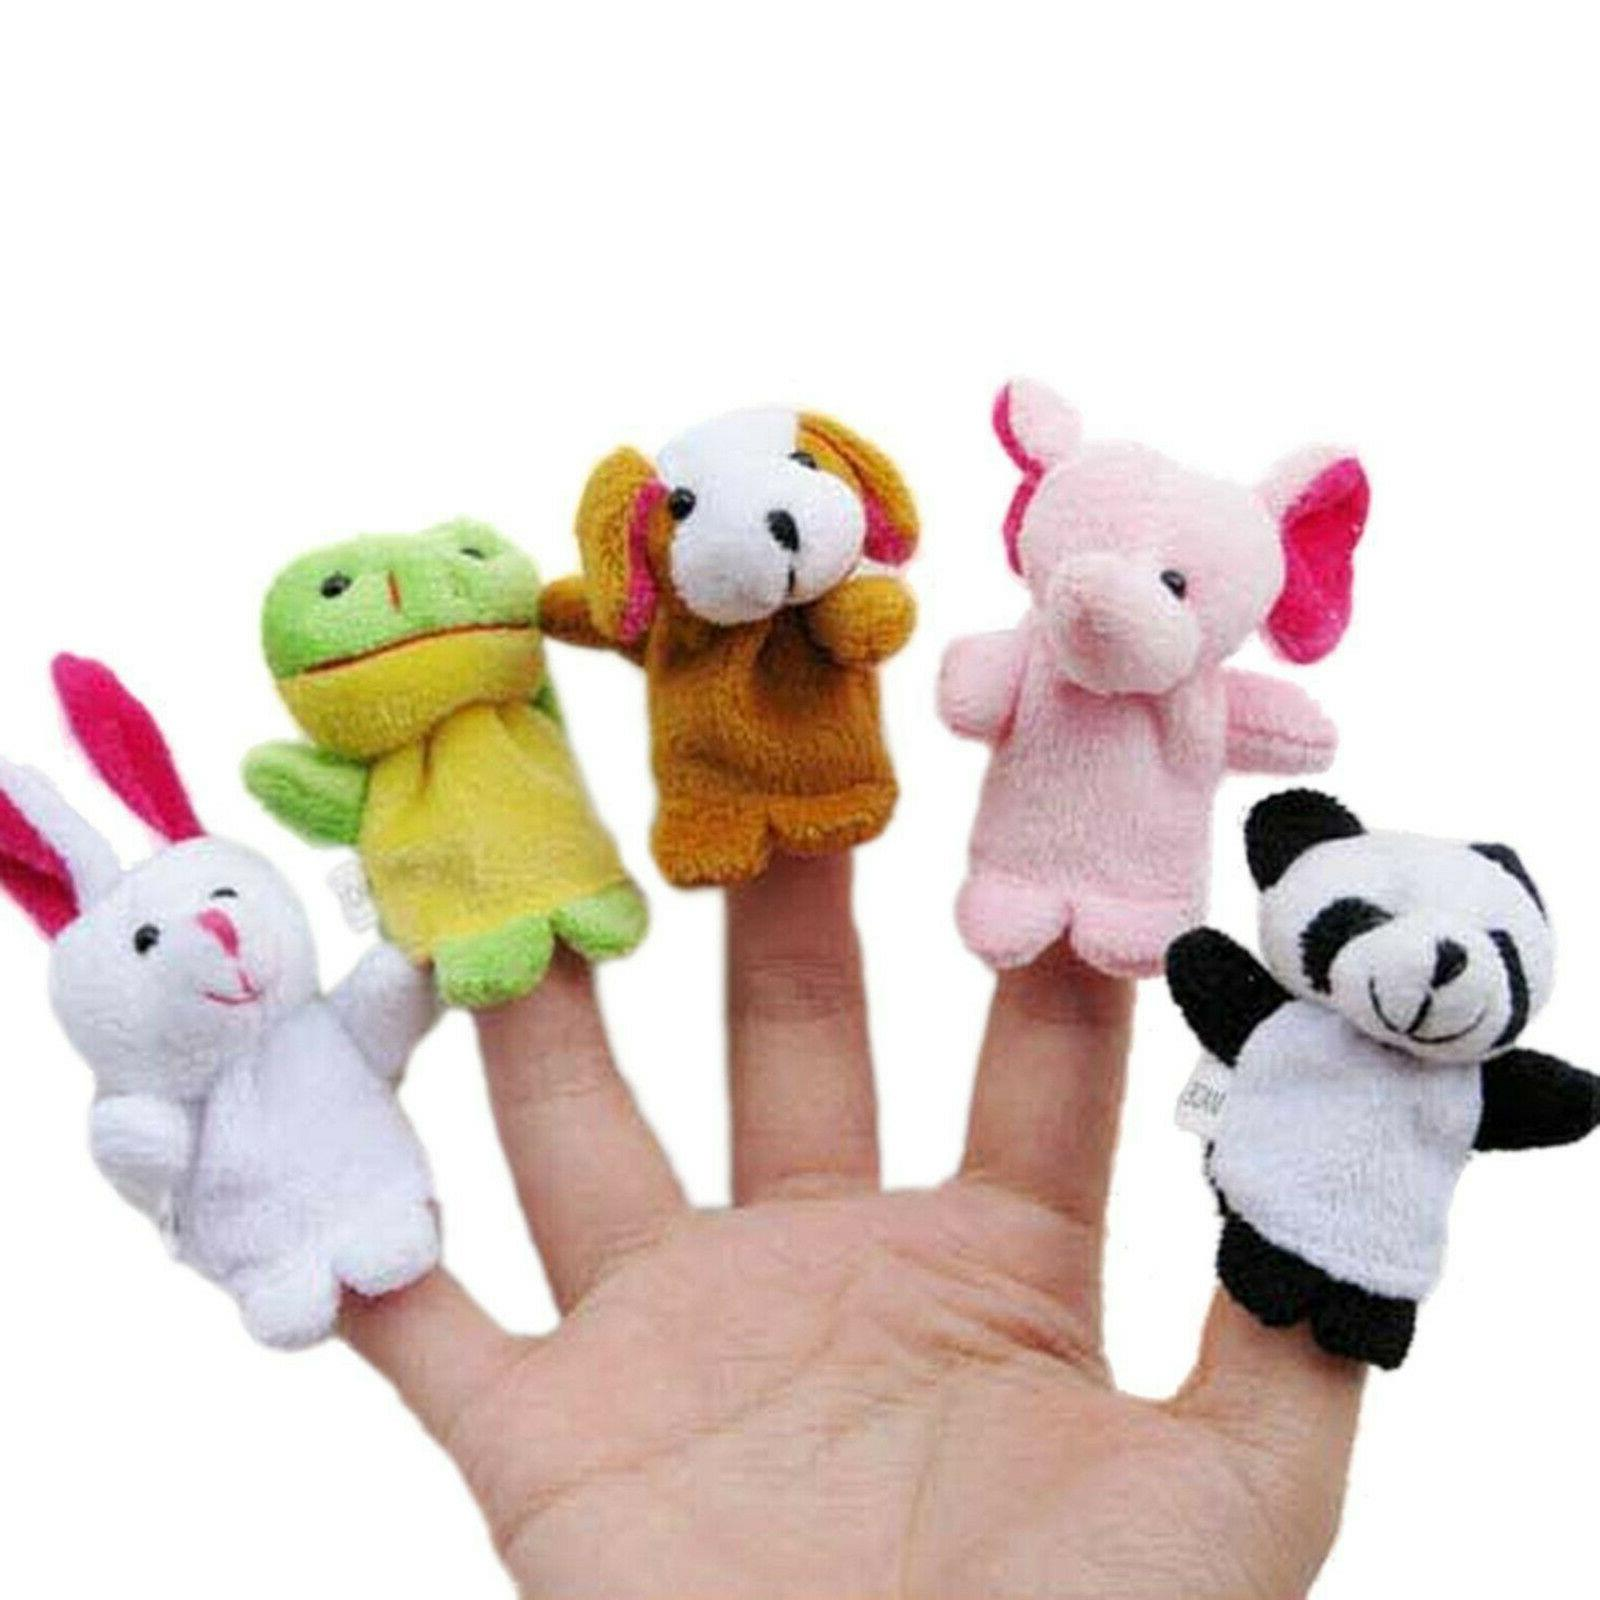 10PCS Fingertip Animal Toys Cloth Cartoon Dolls Puppets Developmental Baby